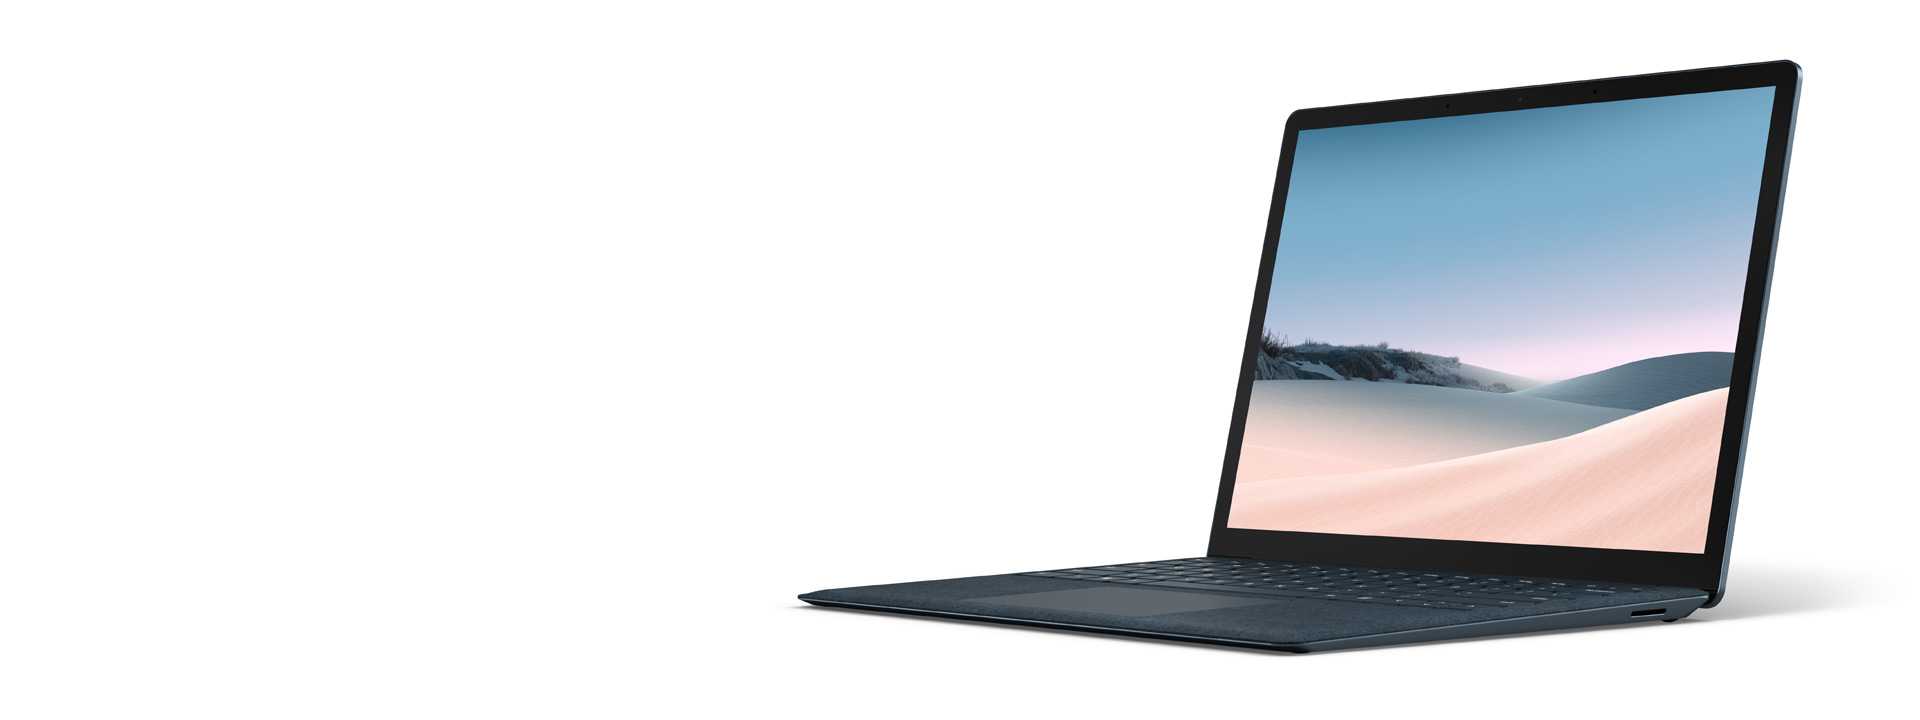 Cobalt Blue Surface Laptop 3 13.5